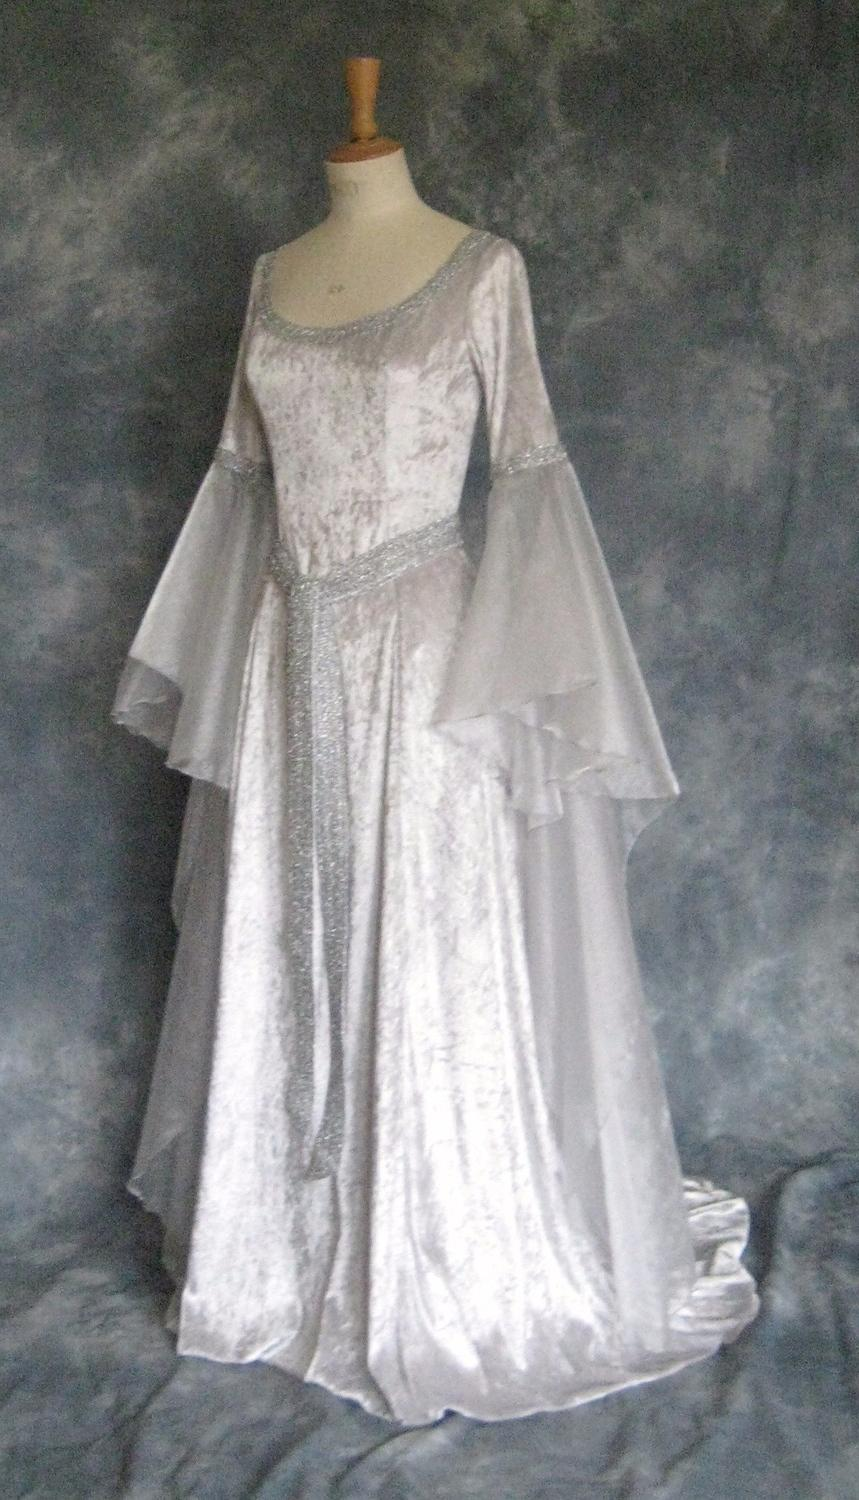 Faery Celtic Wedding Dress